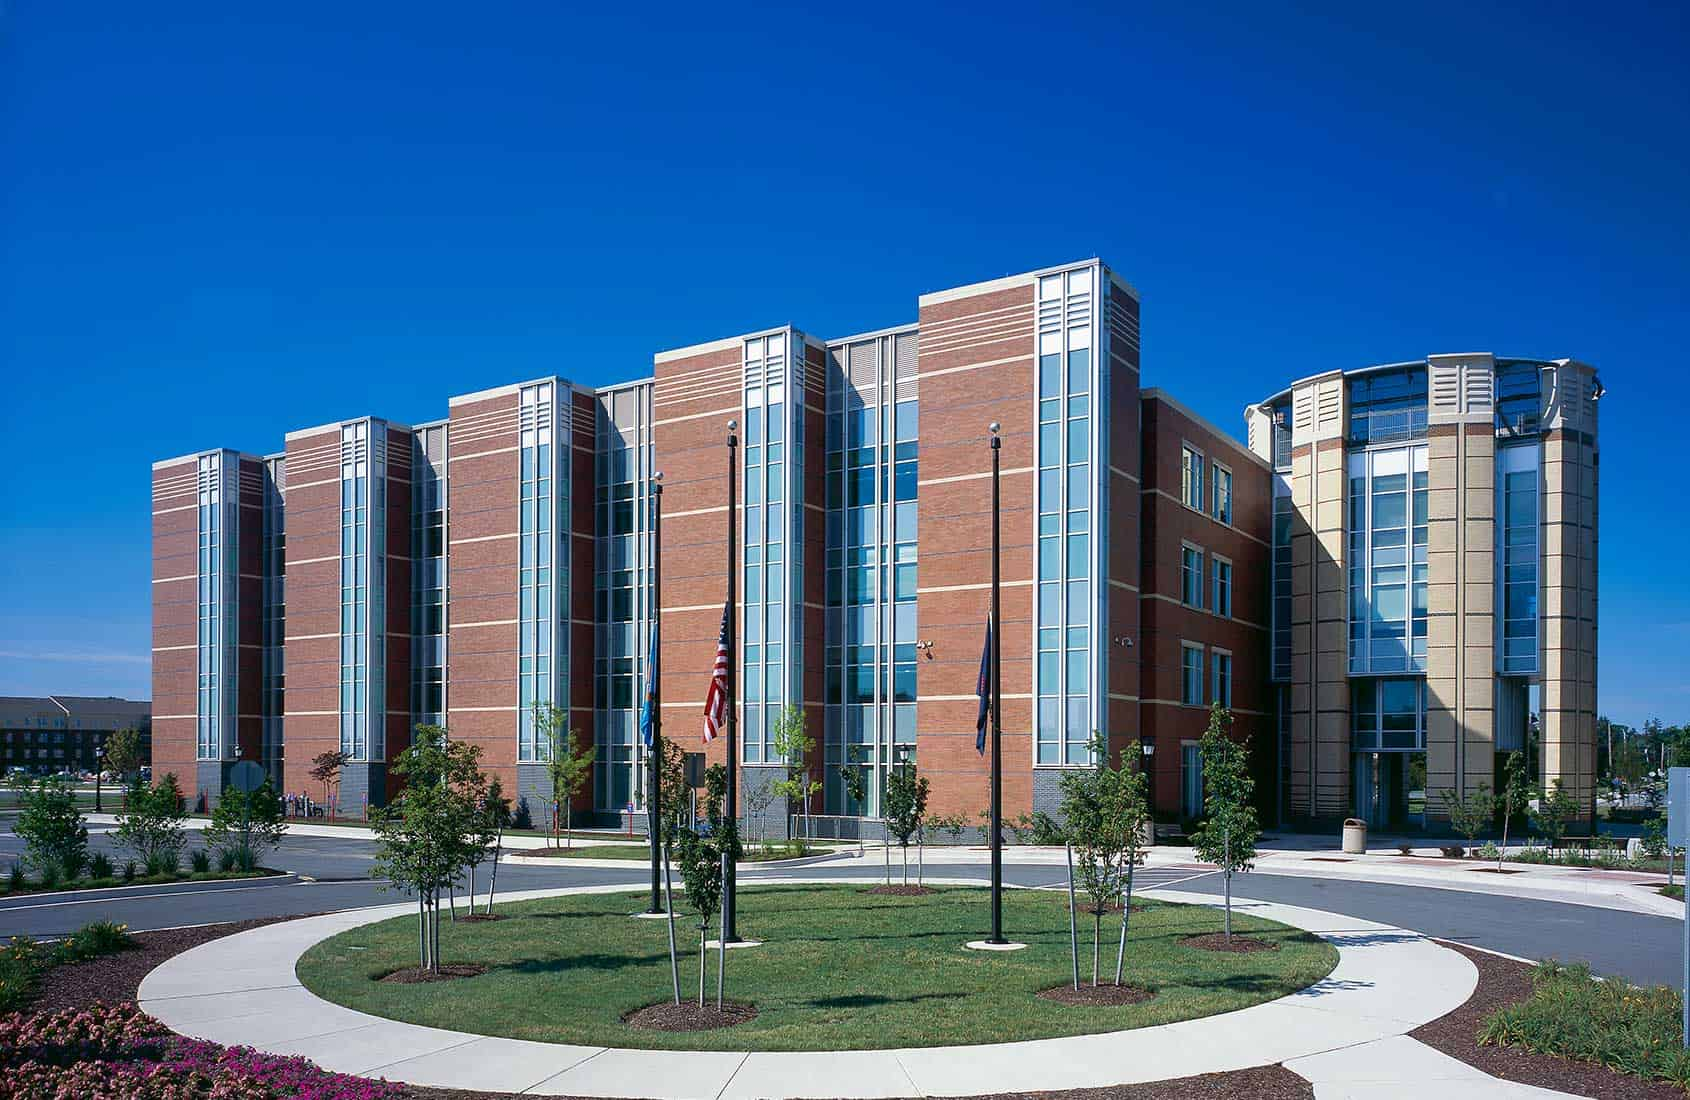 Delaware State University Administration and Student Services Building